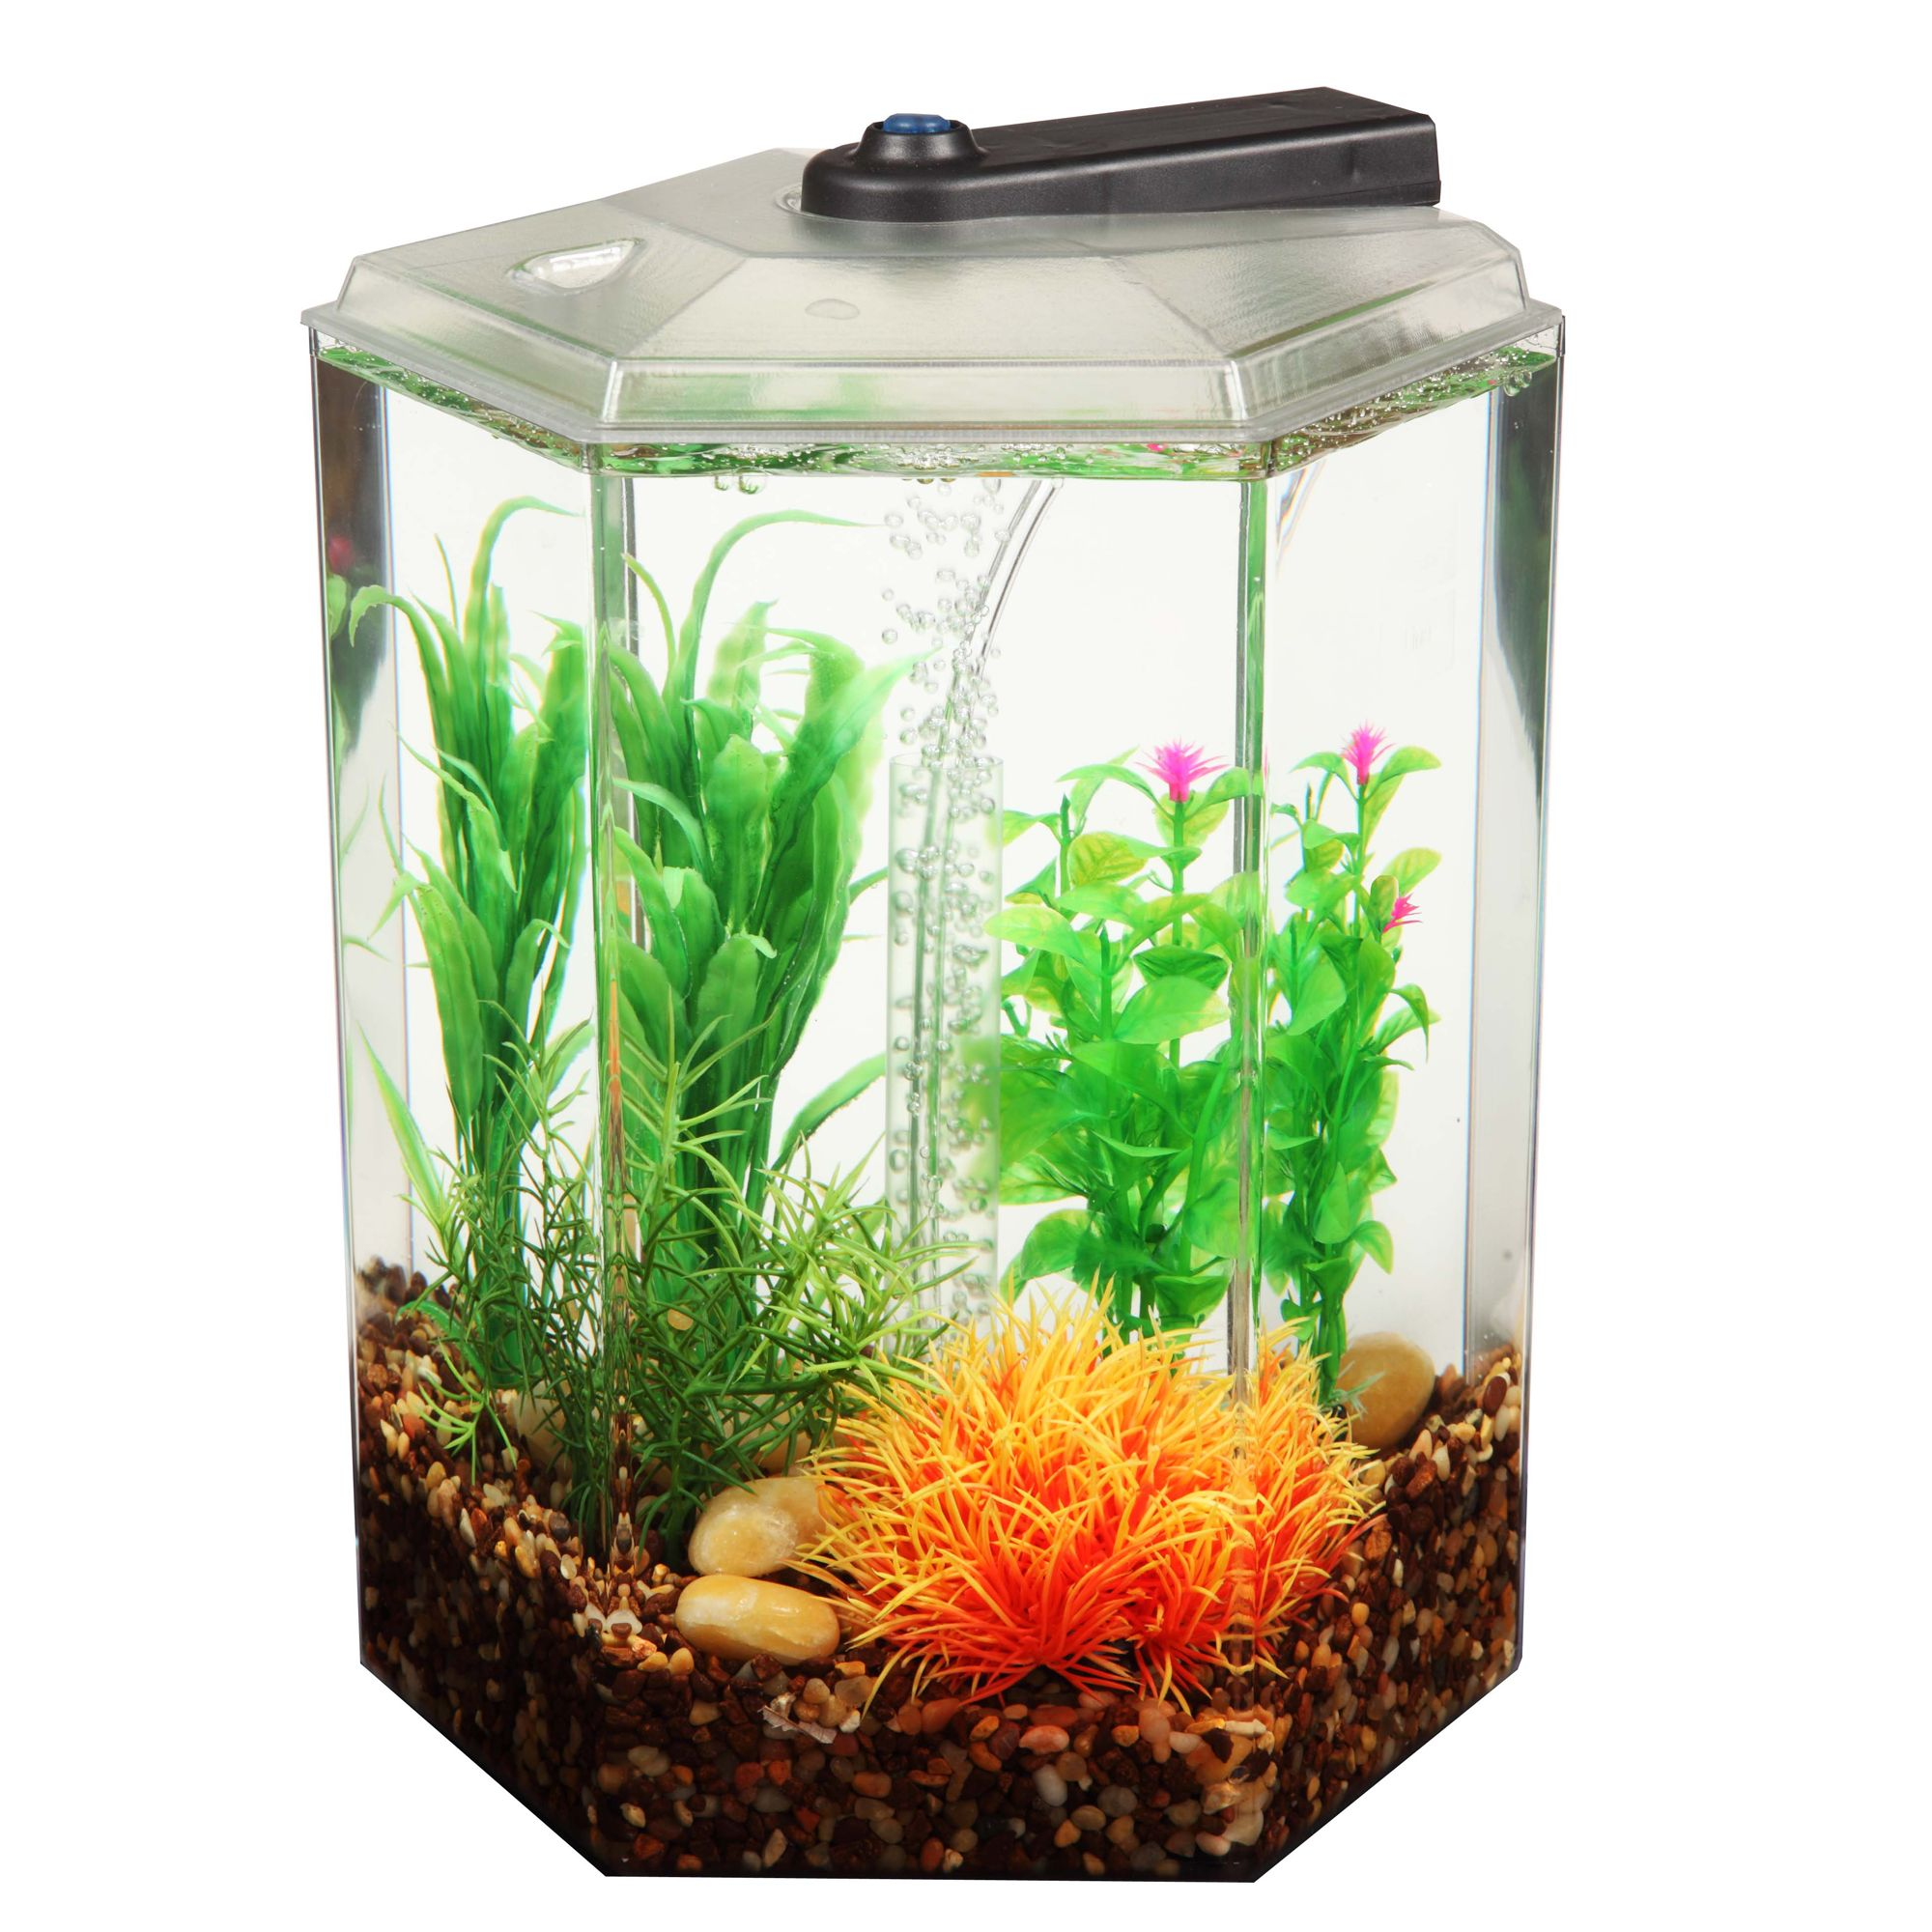 Aquarium top usa page 2 for Fish tank supplies